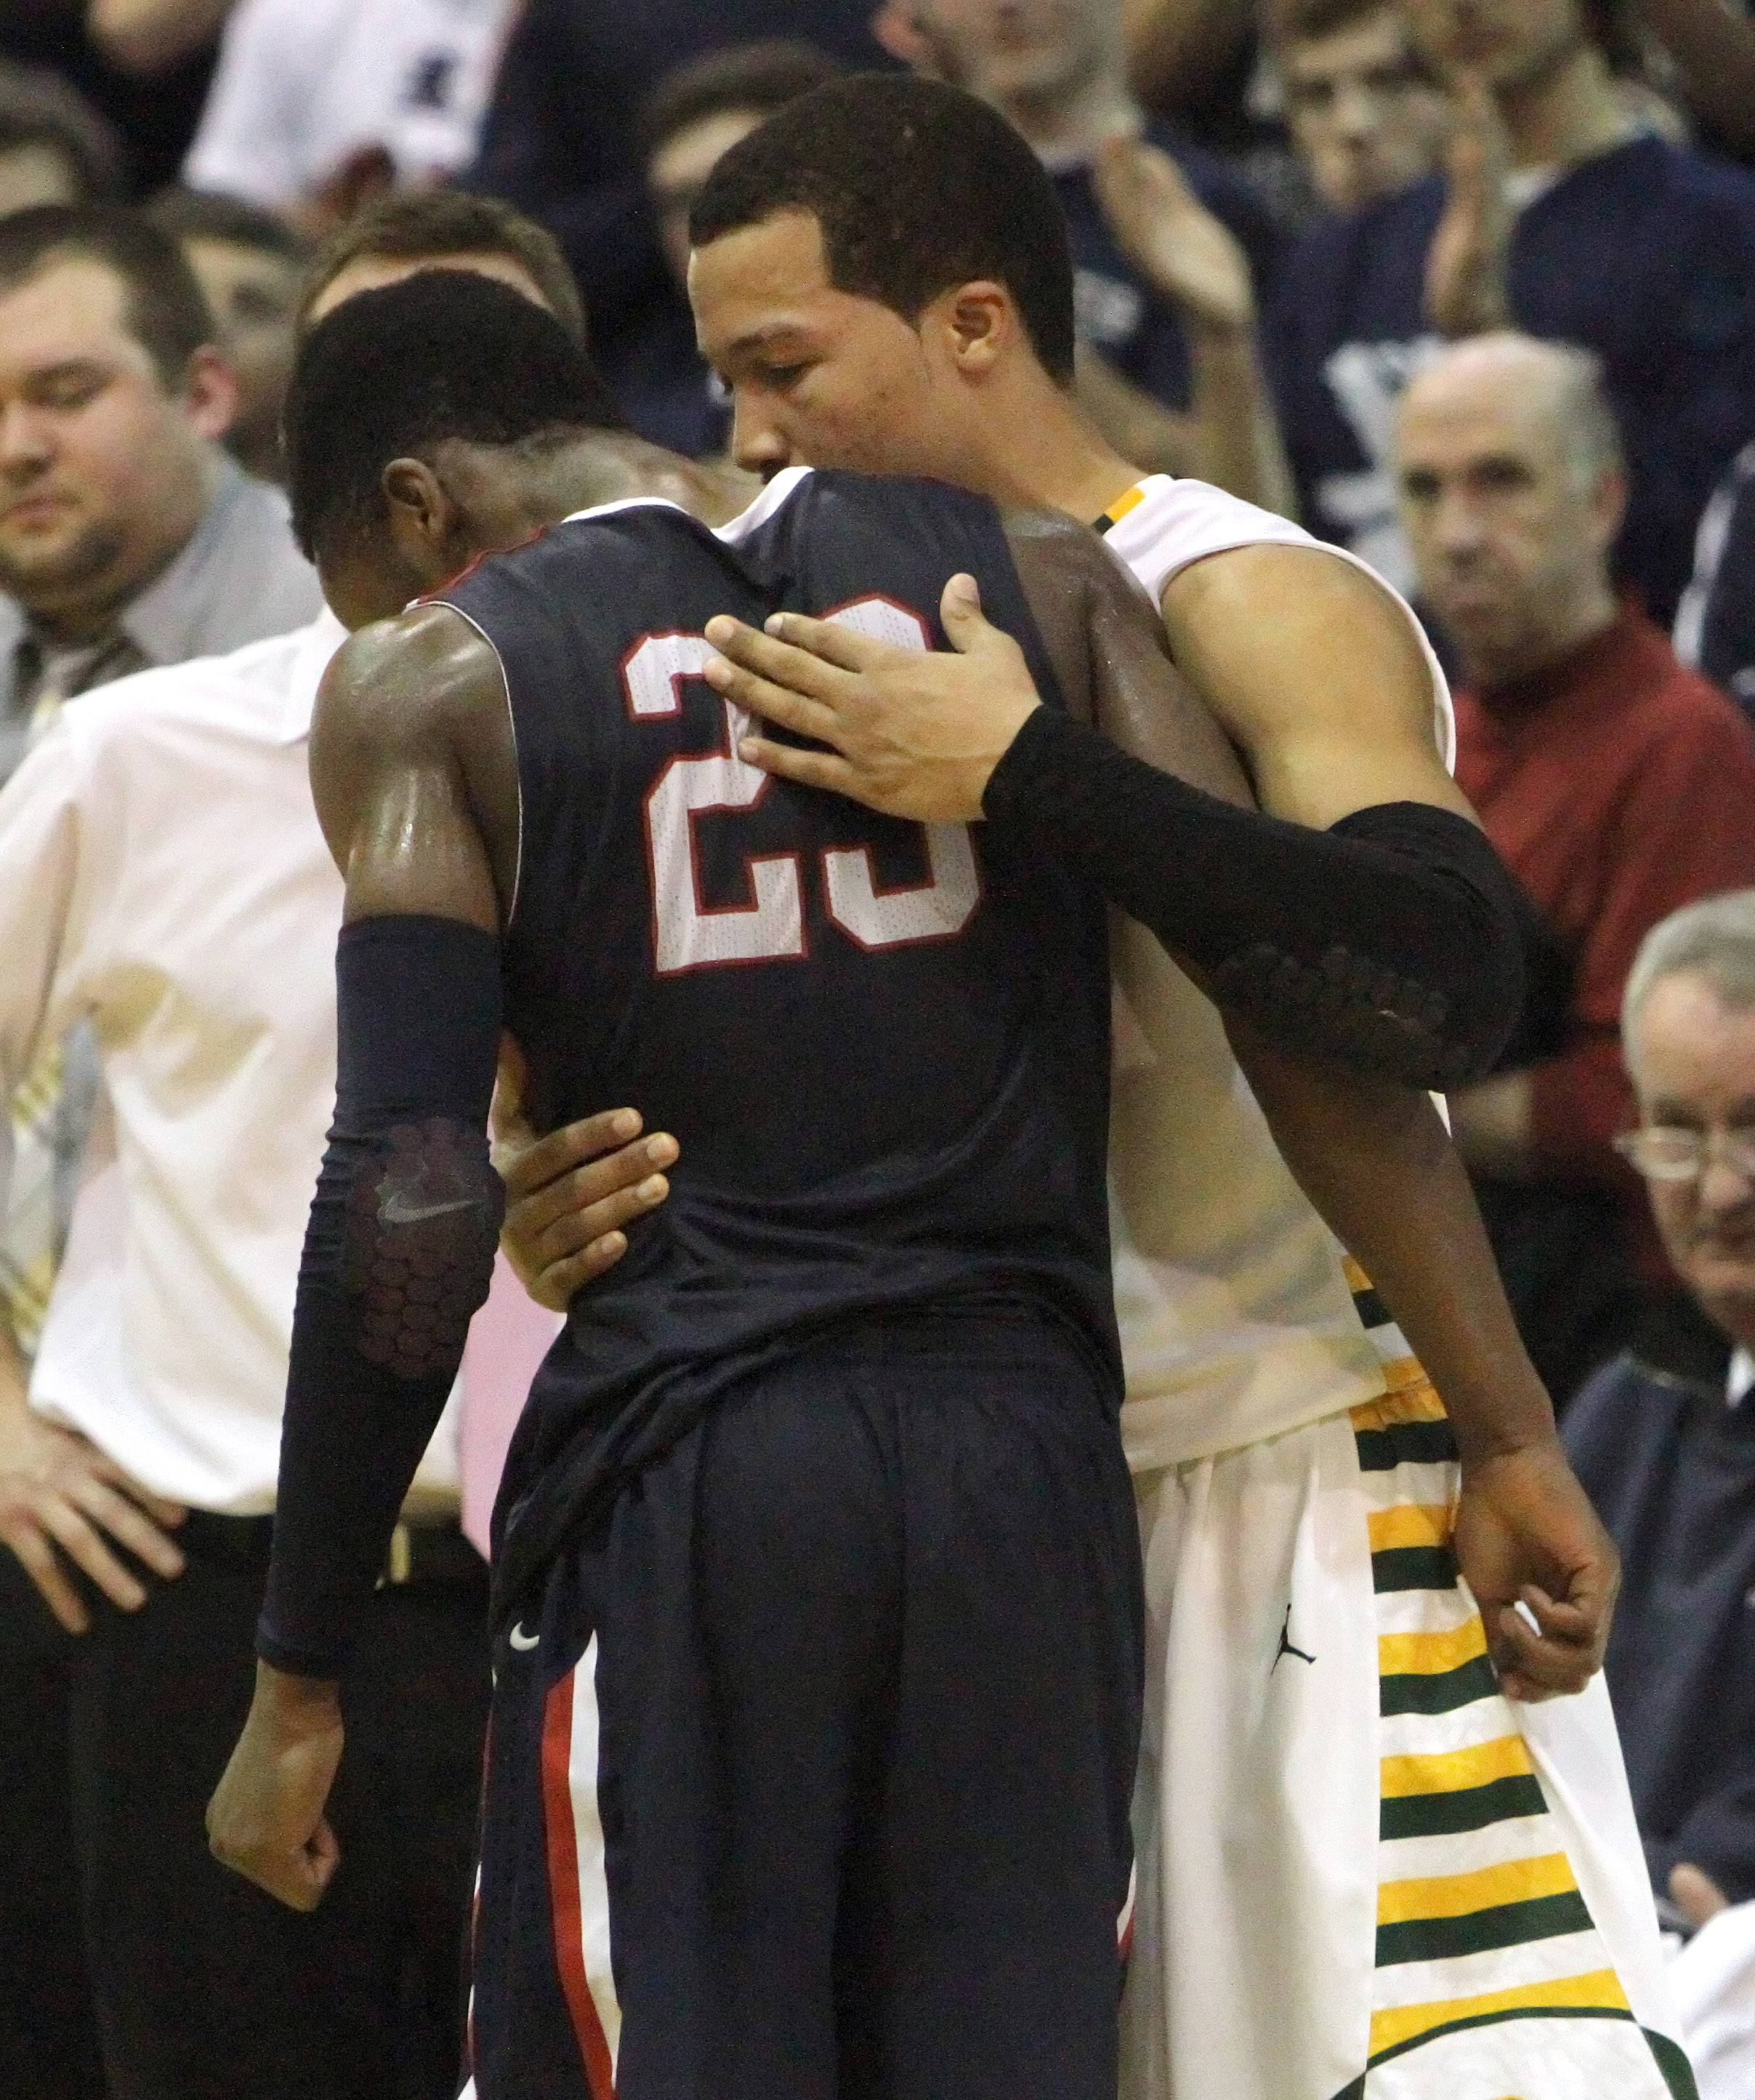 Stevenson's Jalen Brunson, right, consoles St. Viator's Ore Arogundade at game's end in Class 4A sectional semifinal play at Lake Zurich on Tuesday.